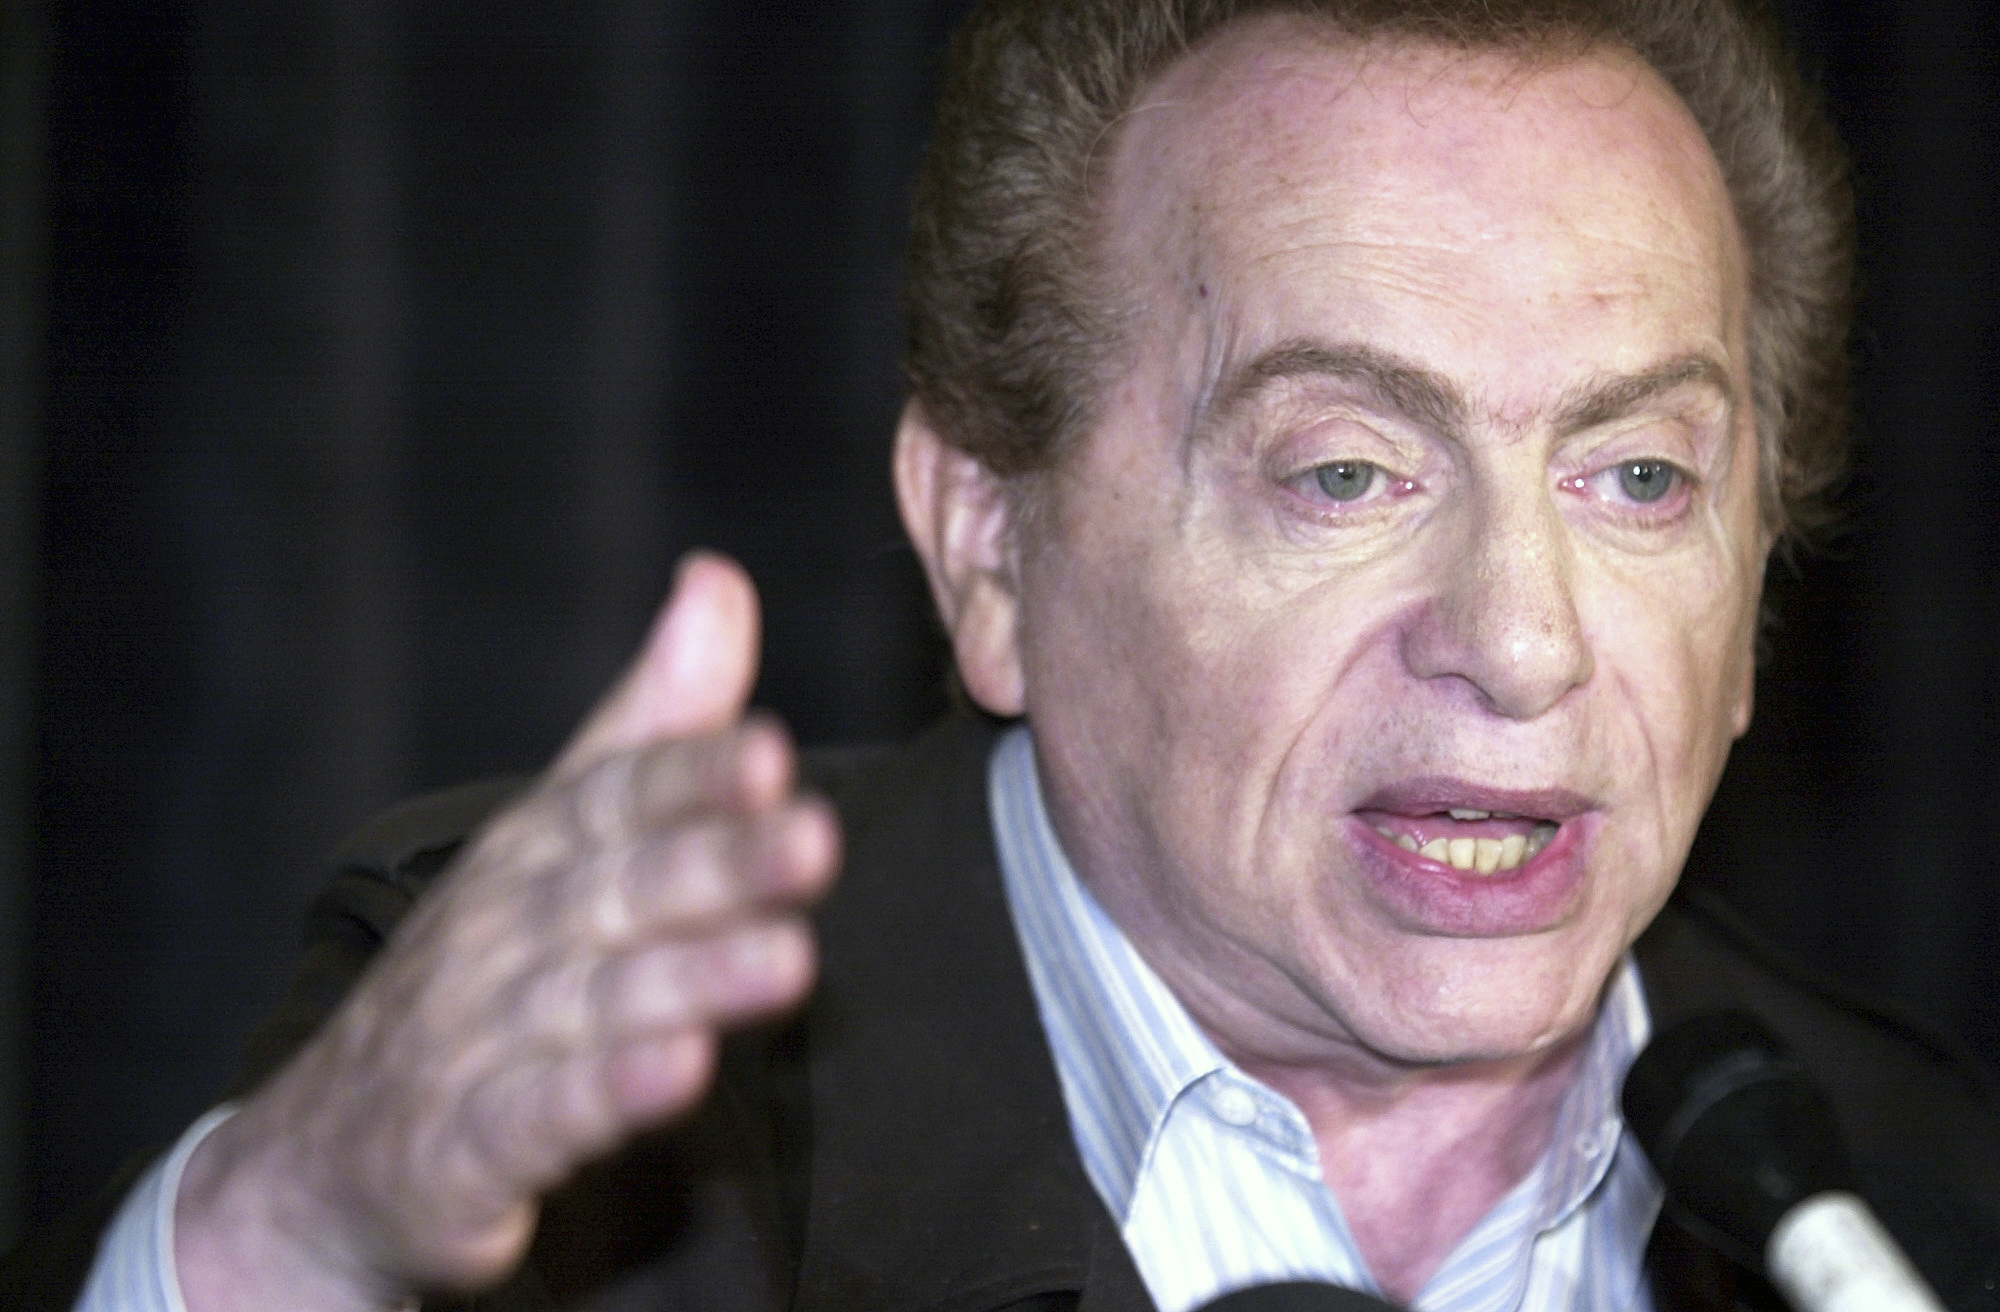 In this Aug 28, 2002, photo, comic Jackie Mason addresses the media at Zanie's comedy club in Chicago about the club's decision to cancel comic Ray Hanania's appearance. (AP Photo/Stephen J. Carrera)